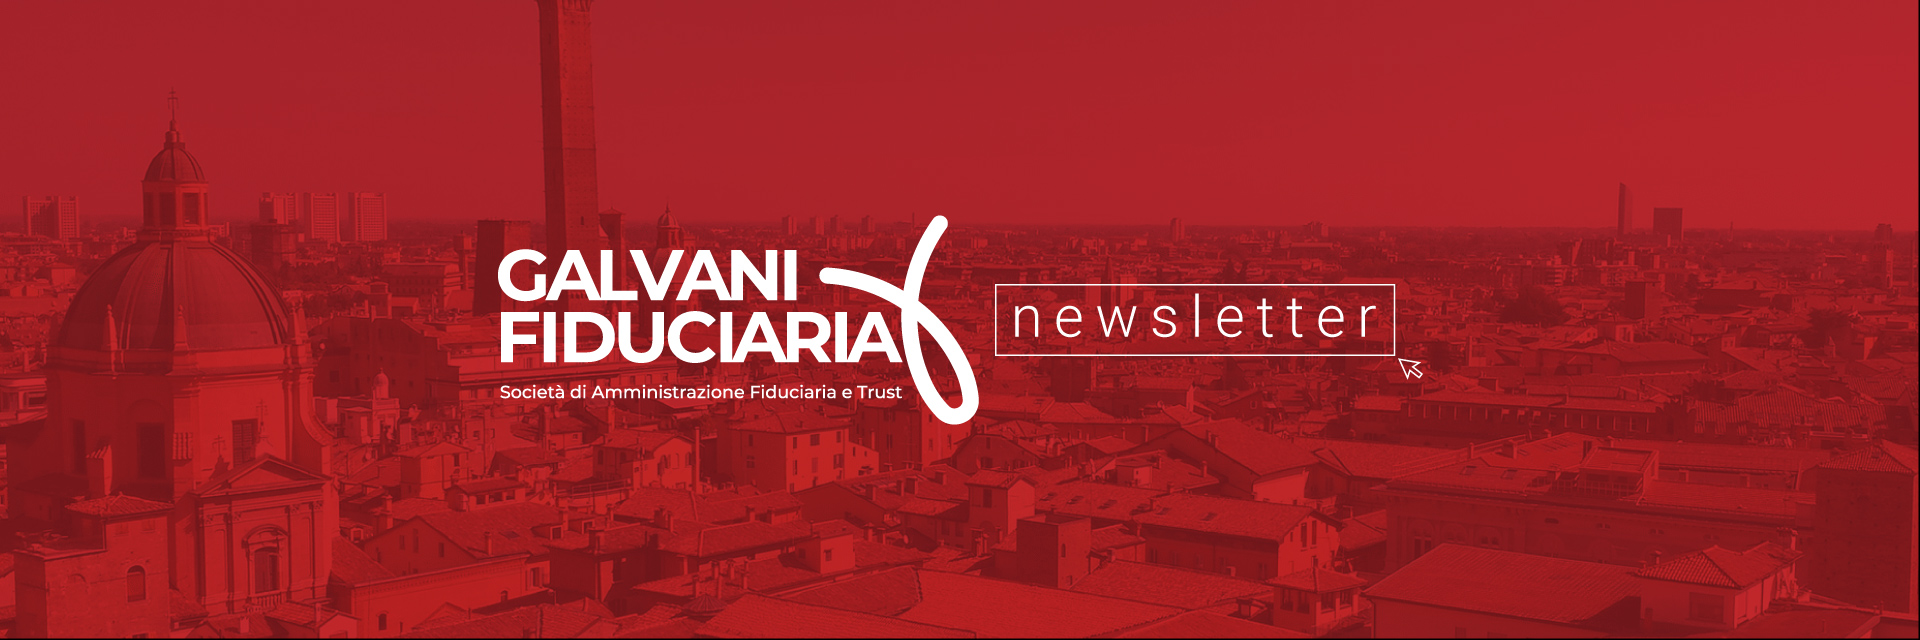 Galvani Fiduciaria Newsletter